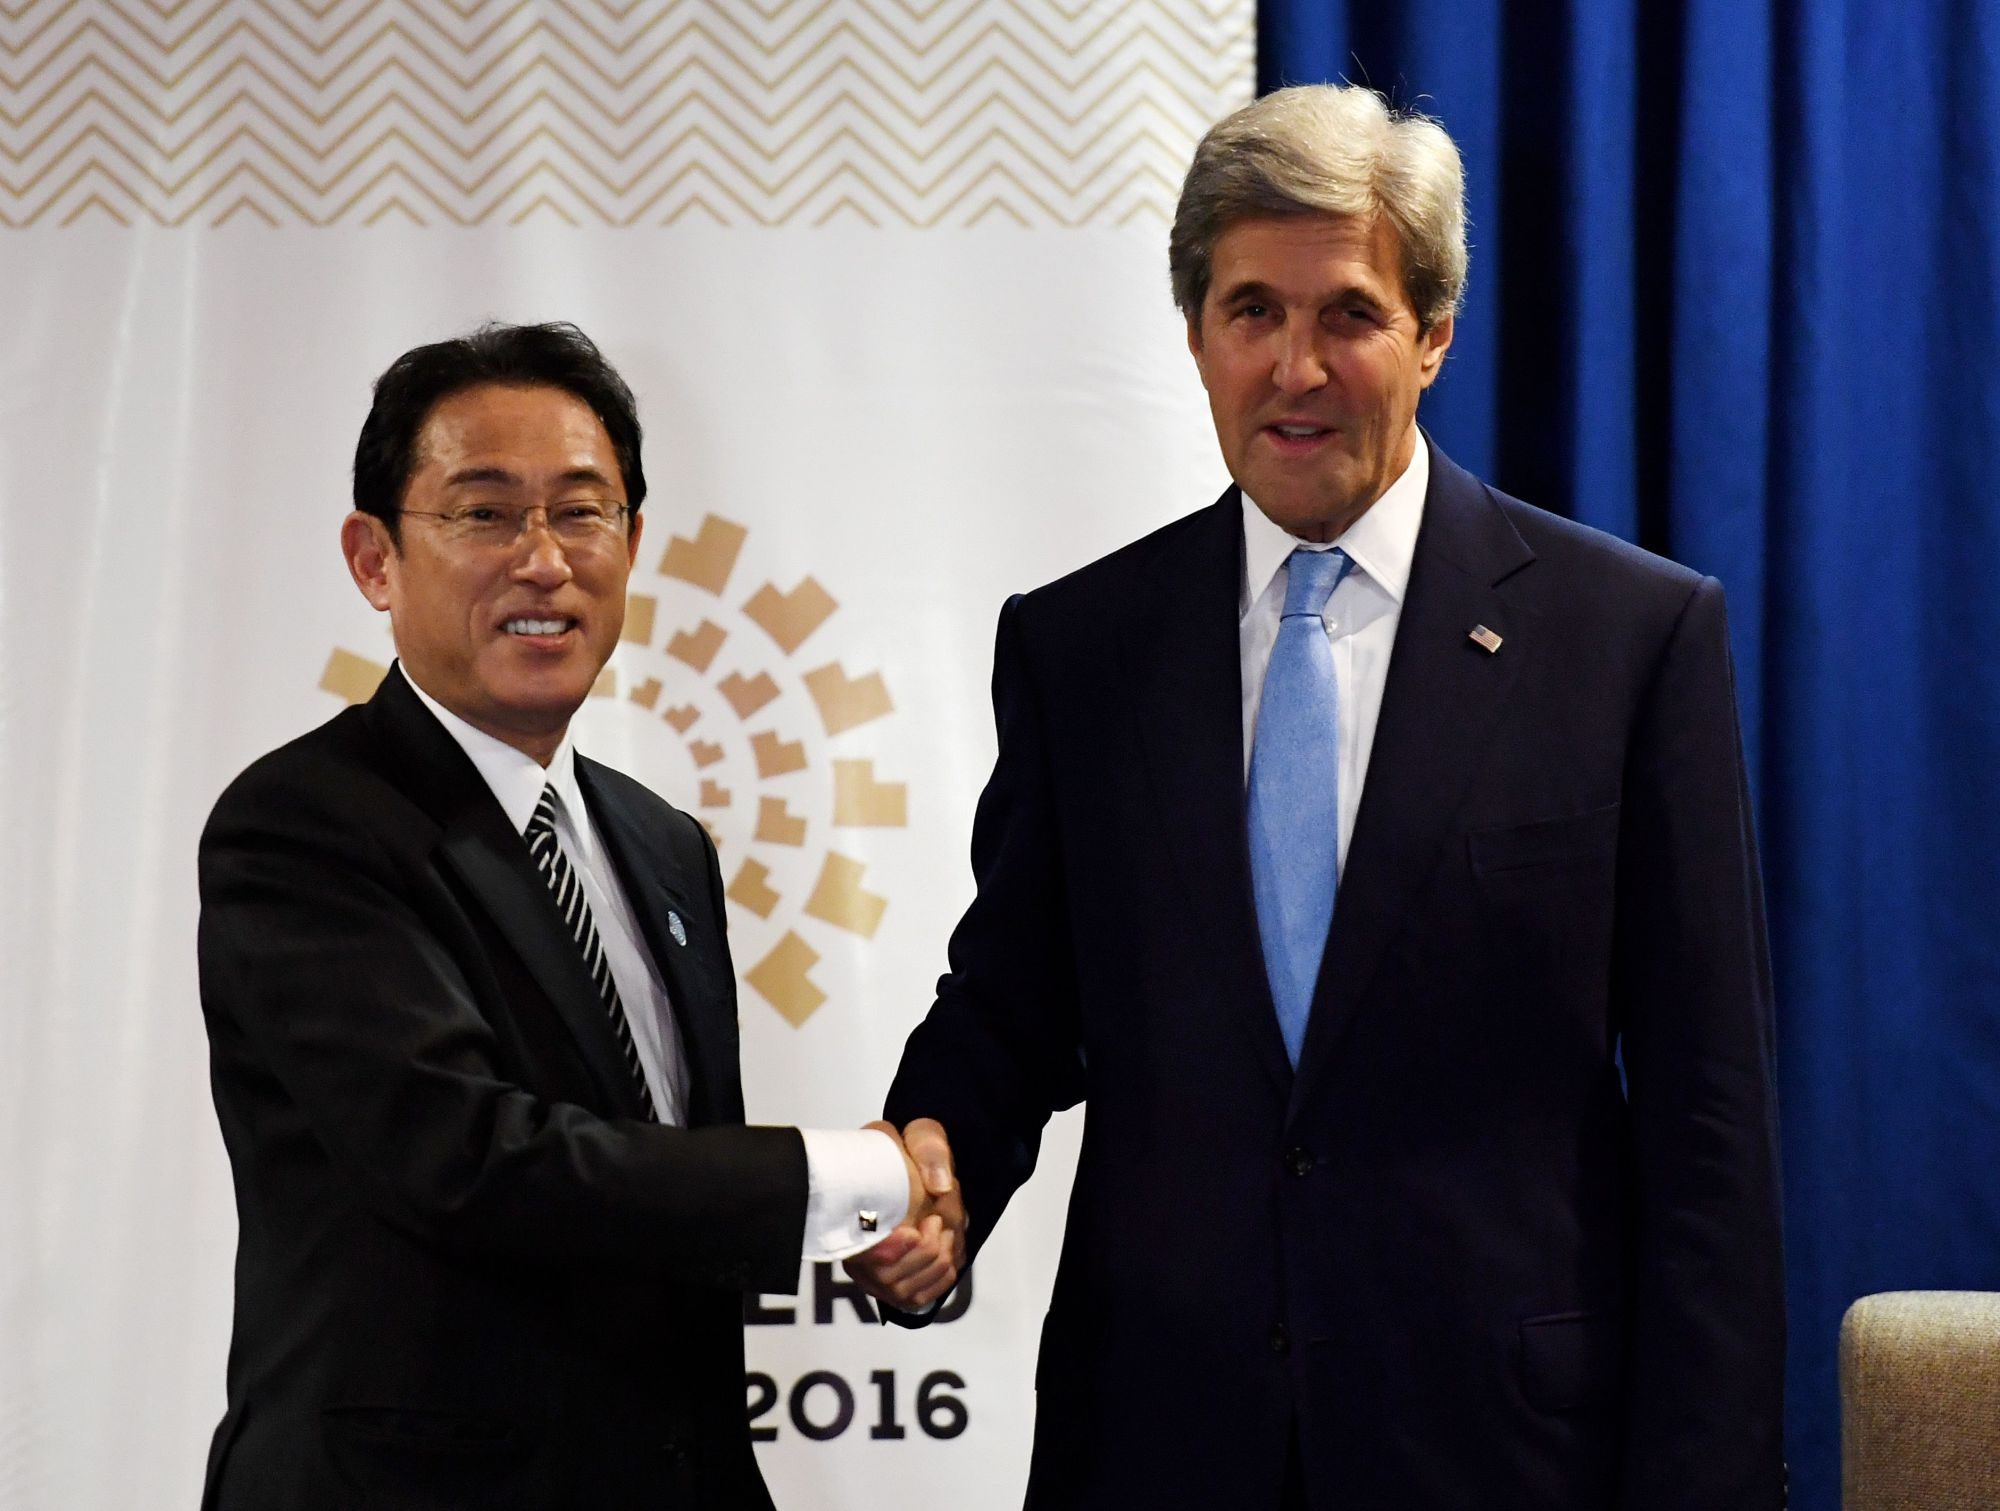 U.S. Secretary of State John Kerry meets with Foreign Minister Fumio Kishida during a bilateral meeting at the APEC Ministers Meetings in Lima on Thursday. | AFP-JIJI